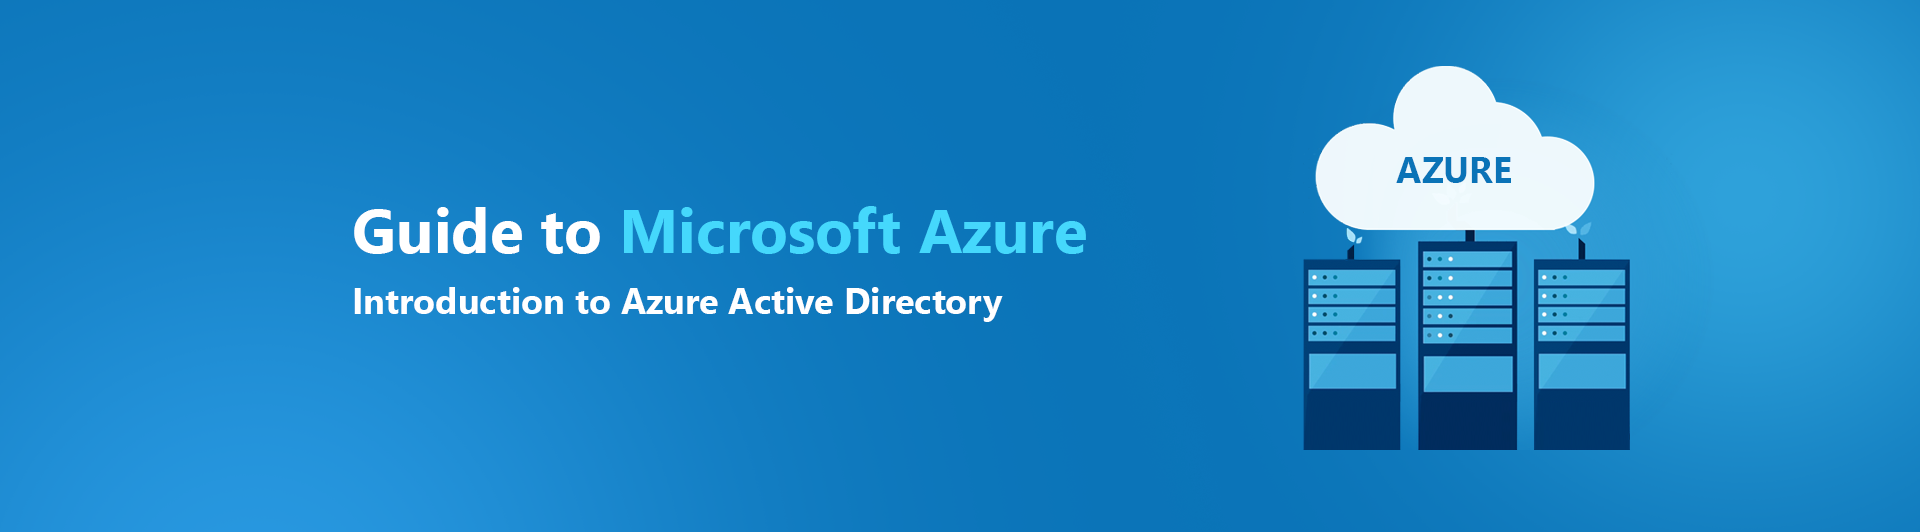 guide to microsoft azure azure active directory